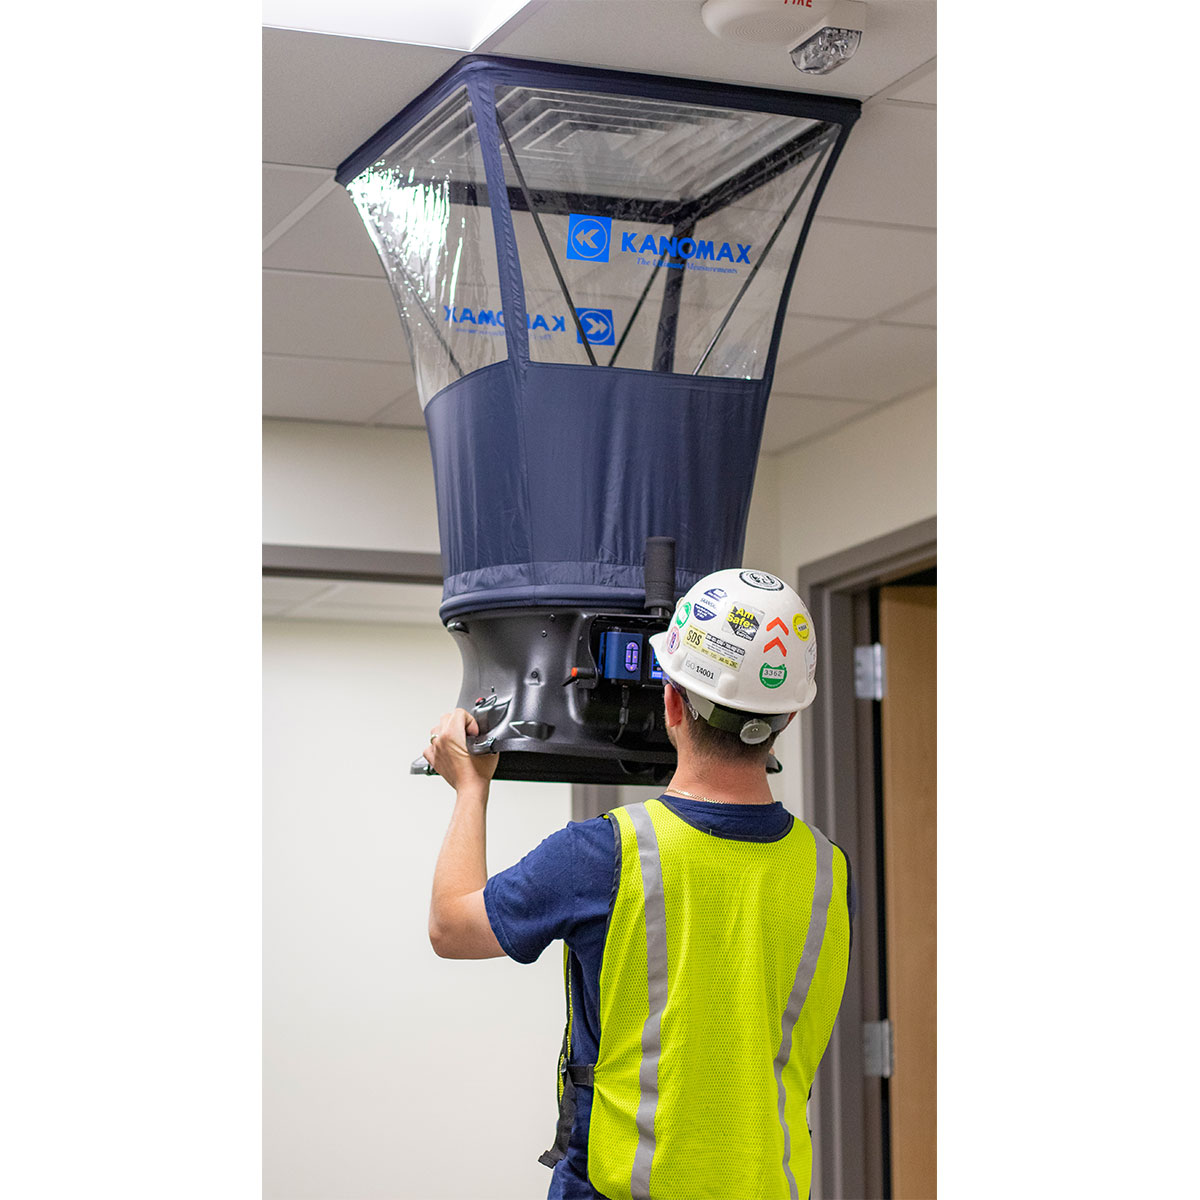 TABmaster Airflow Capture Hood - Model 6715 Used in Facility